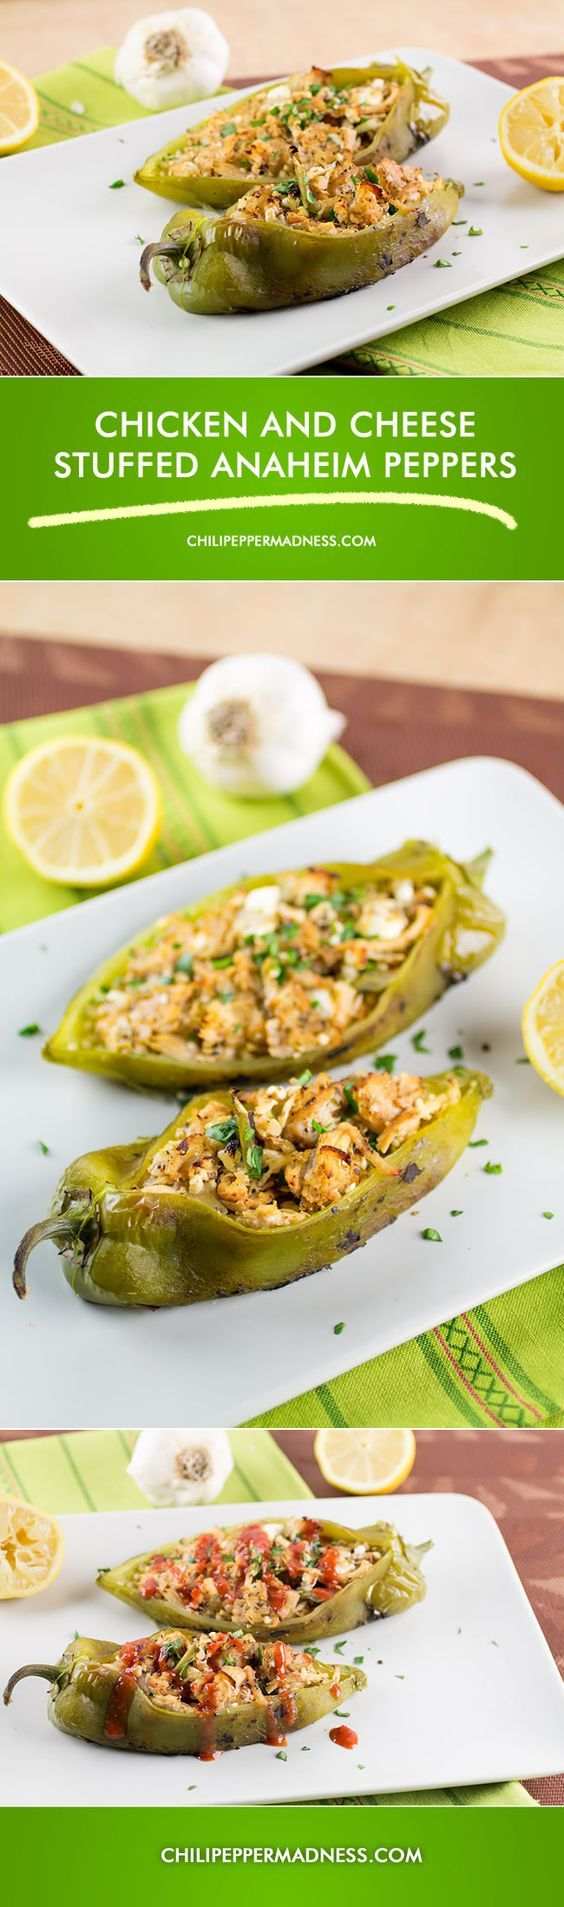 Stuffed Peppers Recipe using the beautiful Anaheim Chili Pepper. Chicken and Cheese Stuffed Anaheim Peppers.